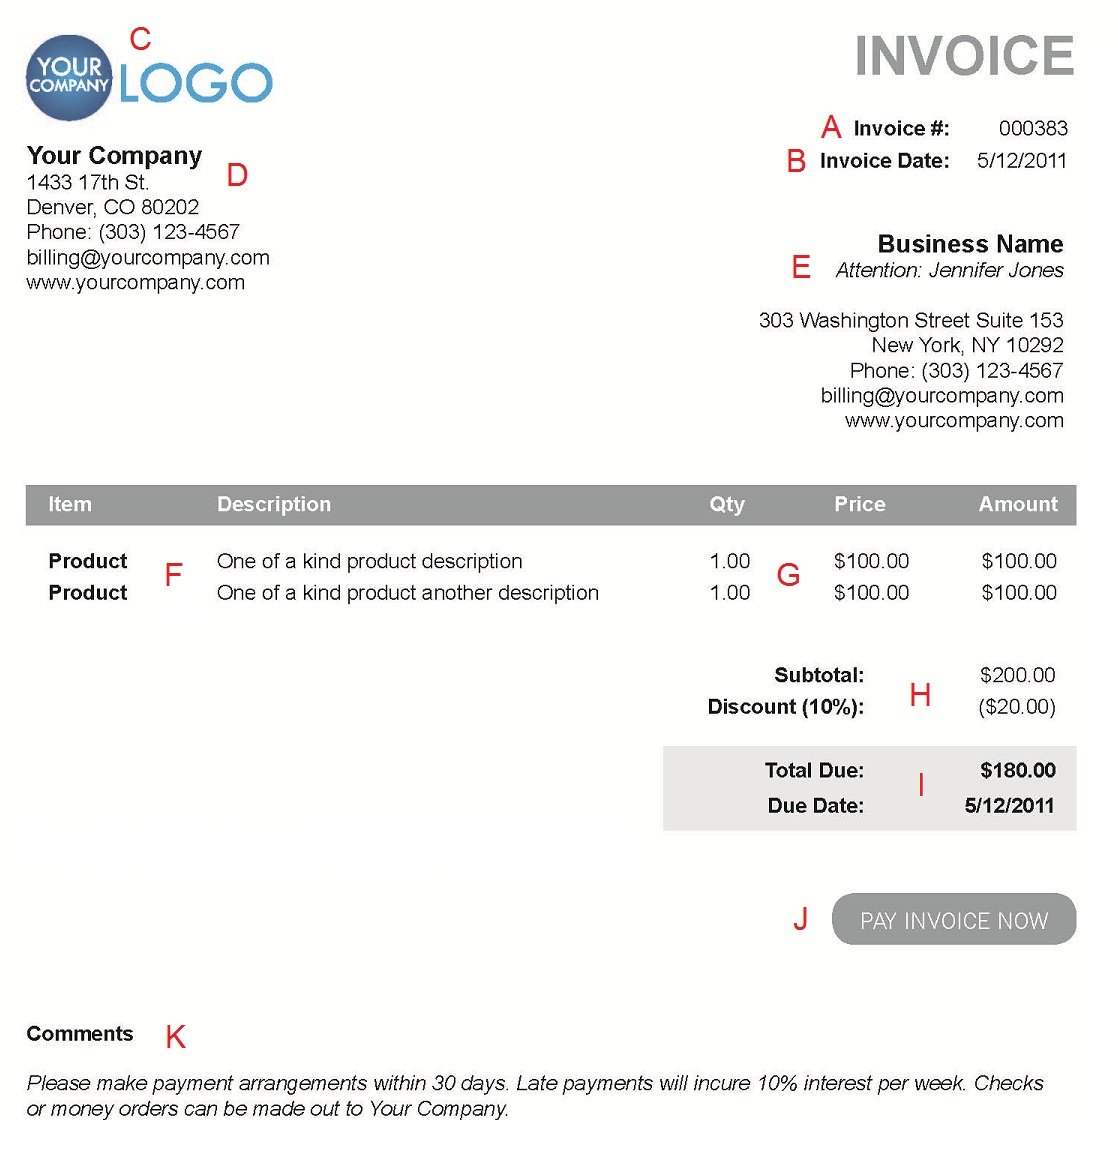 Sandiegolocksmithsus  Fascinating The  Different Sections Of An Electronic Payment Invoice With Magnificent A  With Captivating Confirm Receipt Also Petco Return Policy Without Receipt In Addition What Is A Read Receipt And Custom Receipt Books As Well As Best Buy Lost Receipt Additionally New Mexico Gross Receipts Tax From Paysimplecom With Sandiegolocksmithsus  Magnificent The  Different Sections Of An Electronic Payment Invoice With Captivating A  And Fascinating Confirm Receipt Also Petco Return Policy Without Receipt In Addition What Is A Read Receipt From Paysimplecom